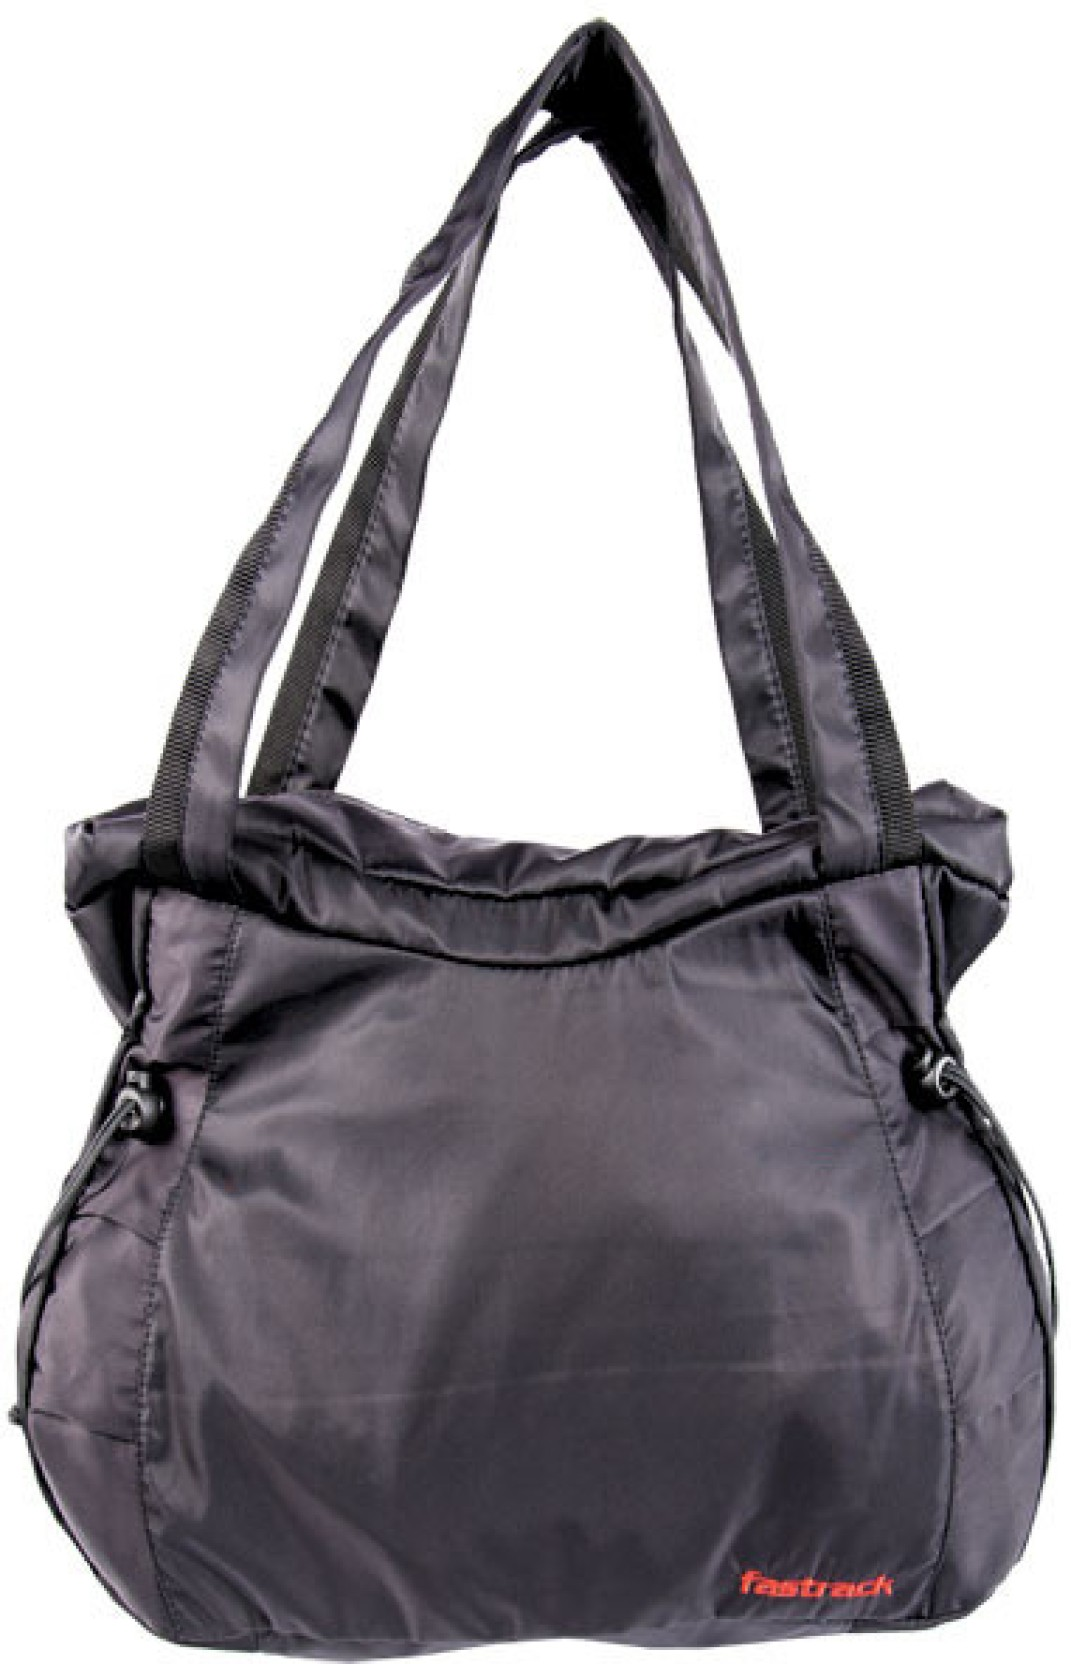 Buy Fastrack Shoulder Bag Black Online @ Best Price in ...